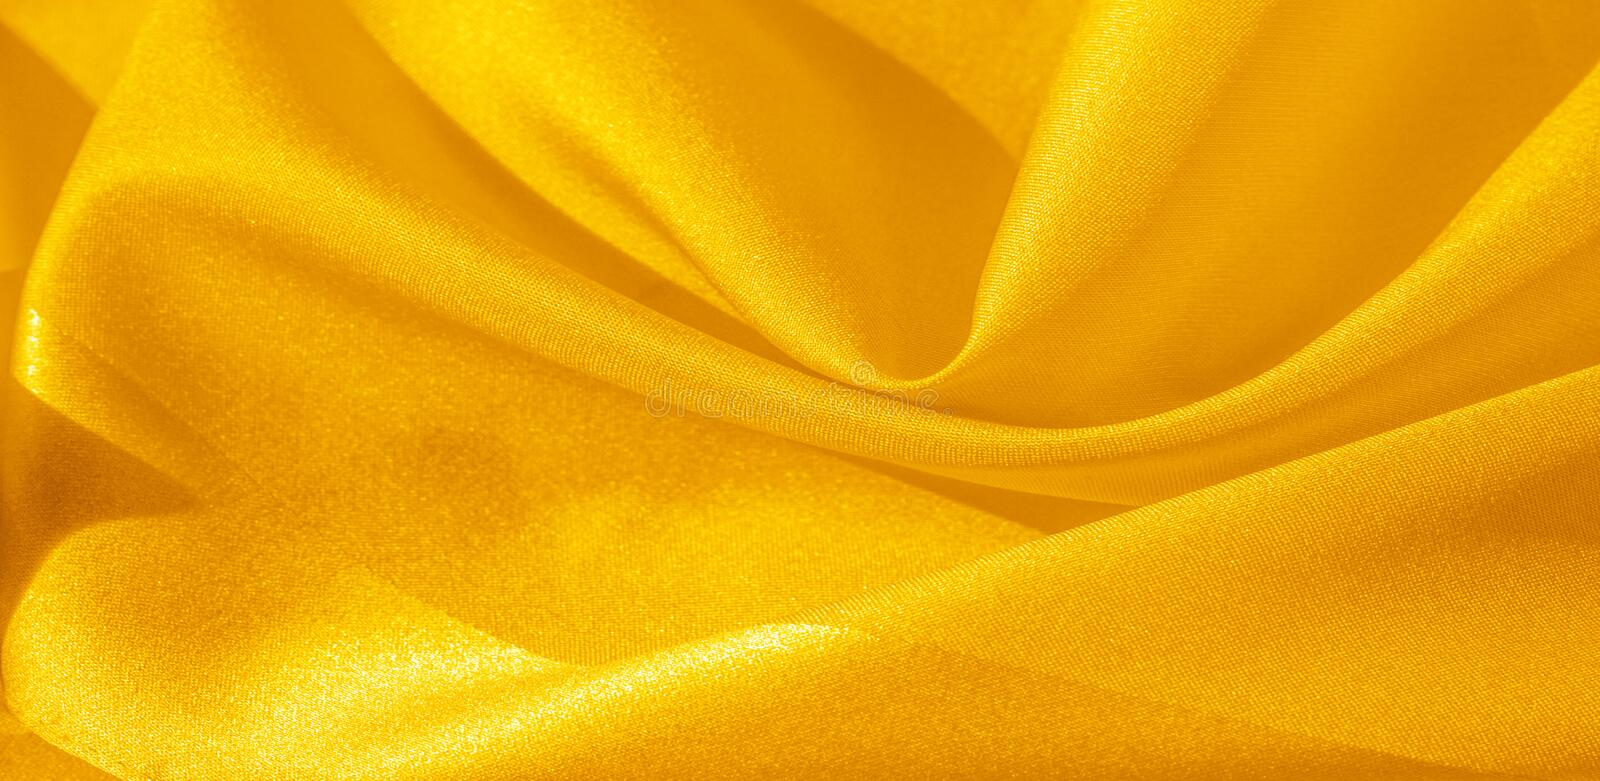 Texture, background, pattern, silk fabric in yellow. This silk is incredibly exquisite. Projects made from this will last a long. Time and will still be in stock photos